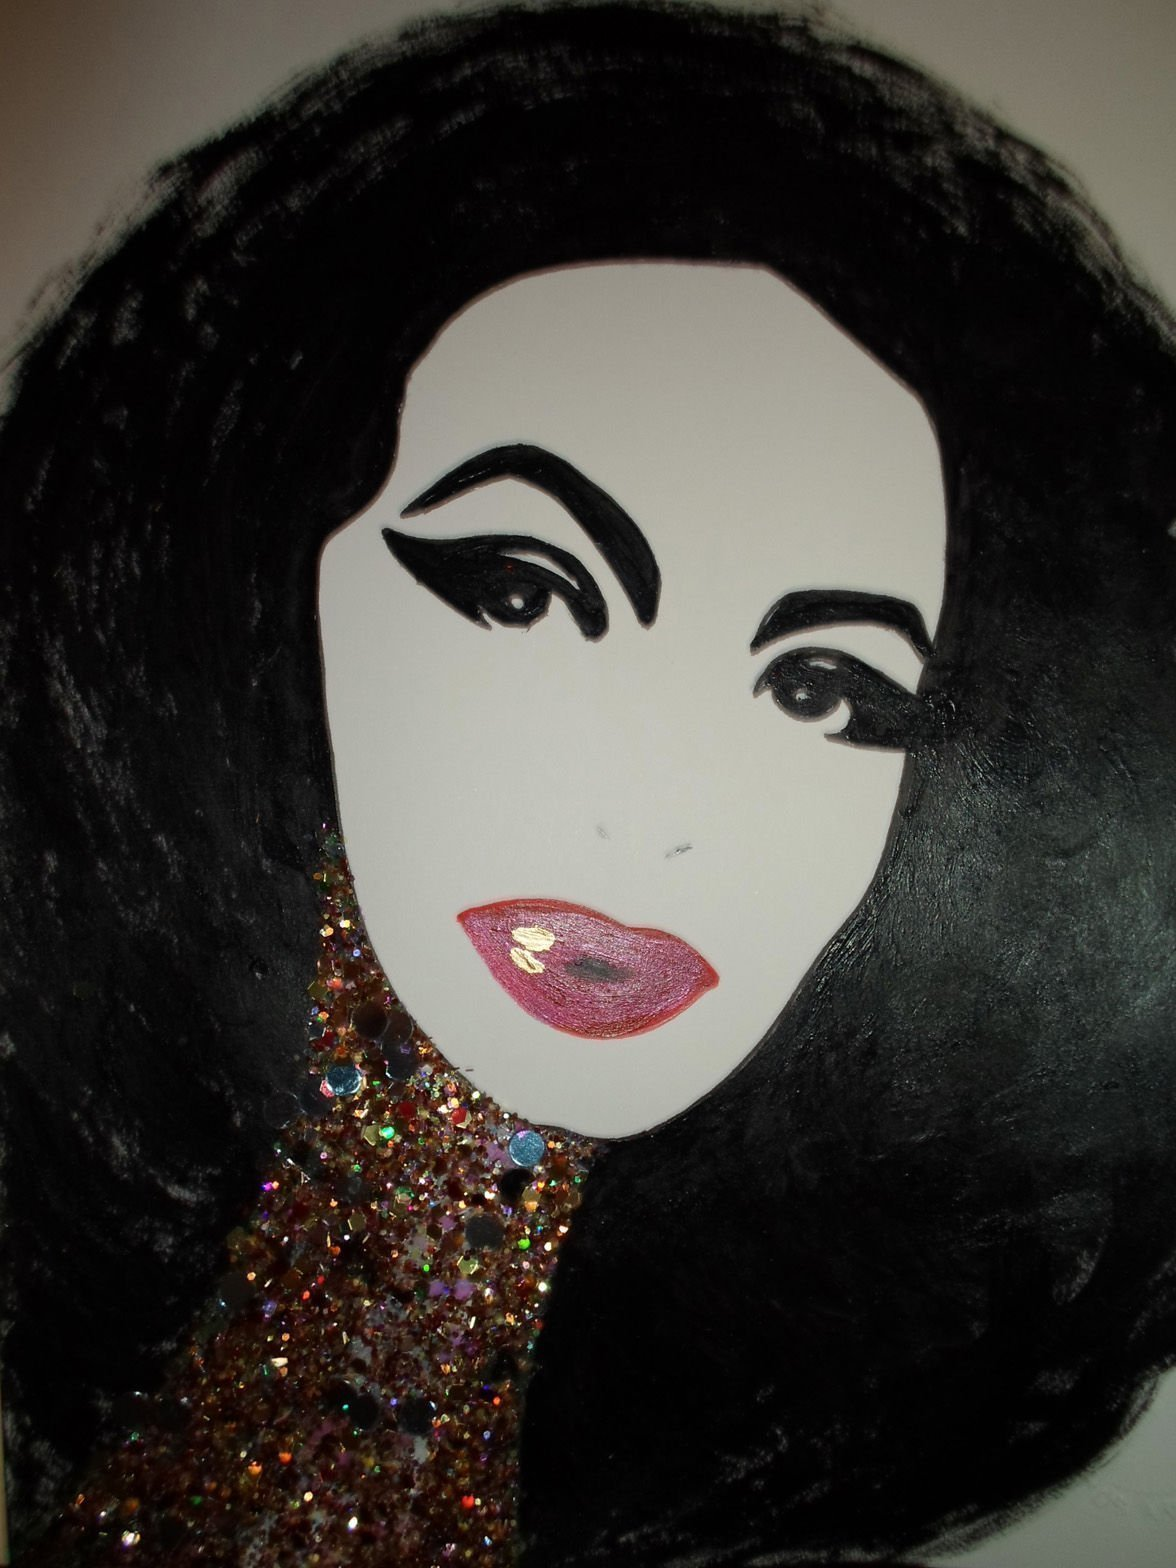 MARIA FELIX : MEXICAN GLAMOROUS DIVA! - Abstract - POP - MEXICAN FOLK ART Style :: ORIGINAL PAINTING - Acrylics and Ink - Modern Painting on Heavy White Paper - SIZE:11''x8.5'' - Signed by the Artist